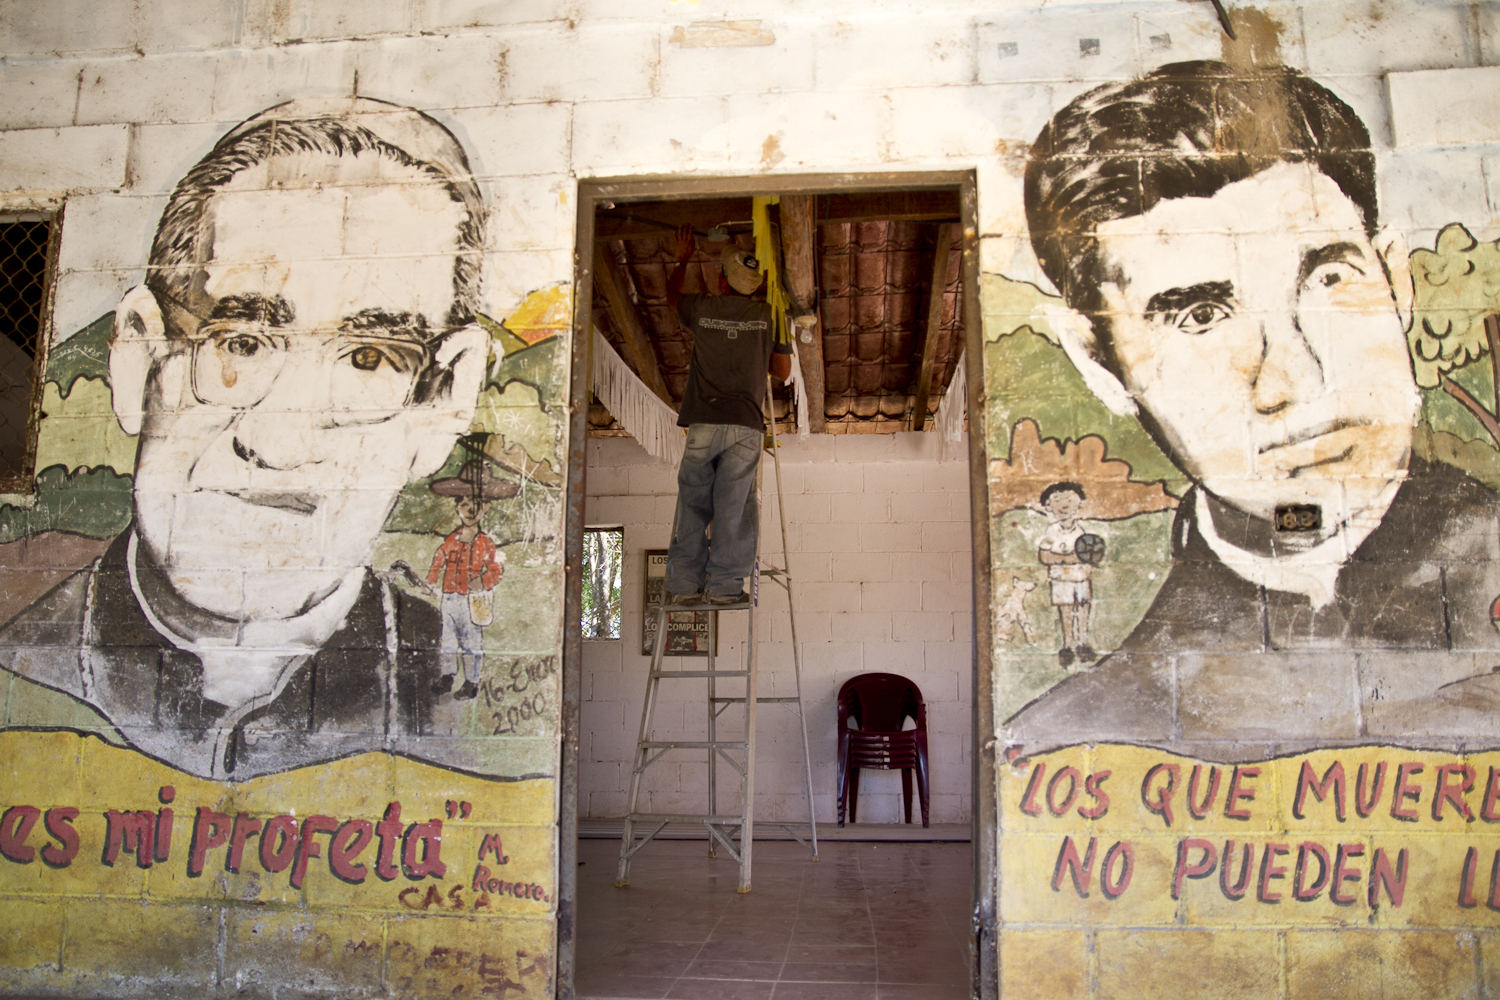 """The images of Óscar Romero and  Father Napoleón Macías adorn the side of Amatitán's community center.  Strong advocates for human rights and changes in the government, both  were assassinated by military forces. Below their likenesses reads two  quotes: """"El pueblo es mi profeta"""" (The people are my prophet) and """"Los  que mueren por la vida no pueden llamarse muertos"""" (Those who die for  life cannot be called dead)."""